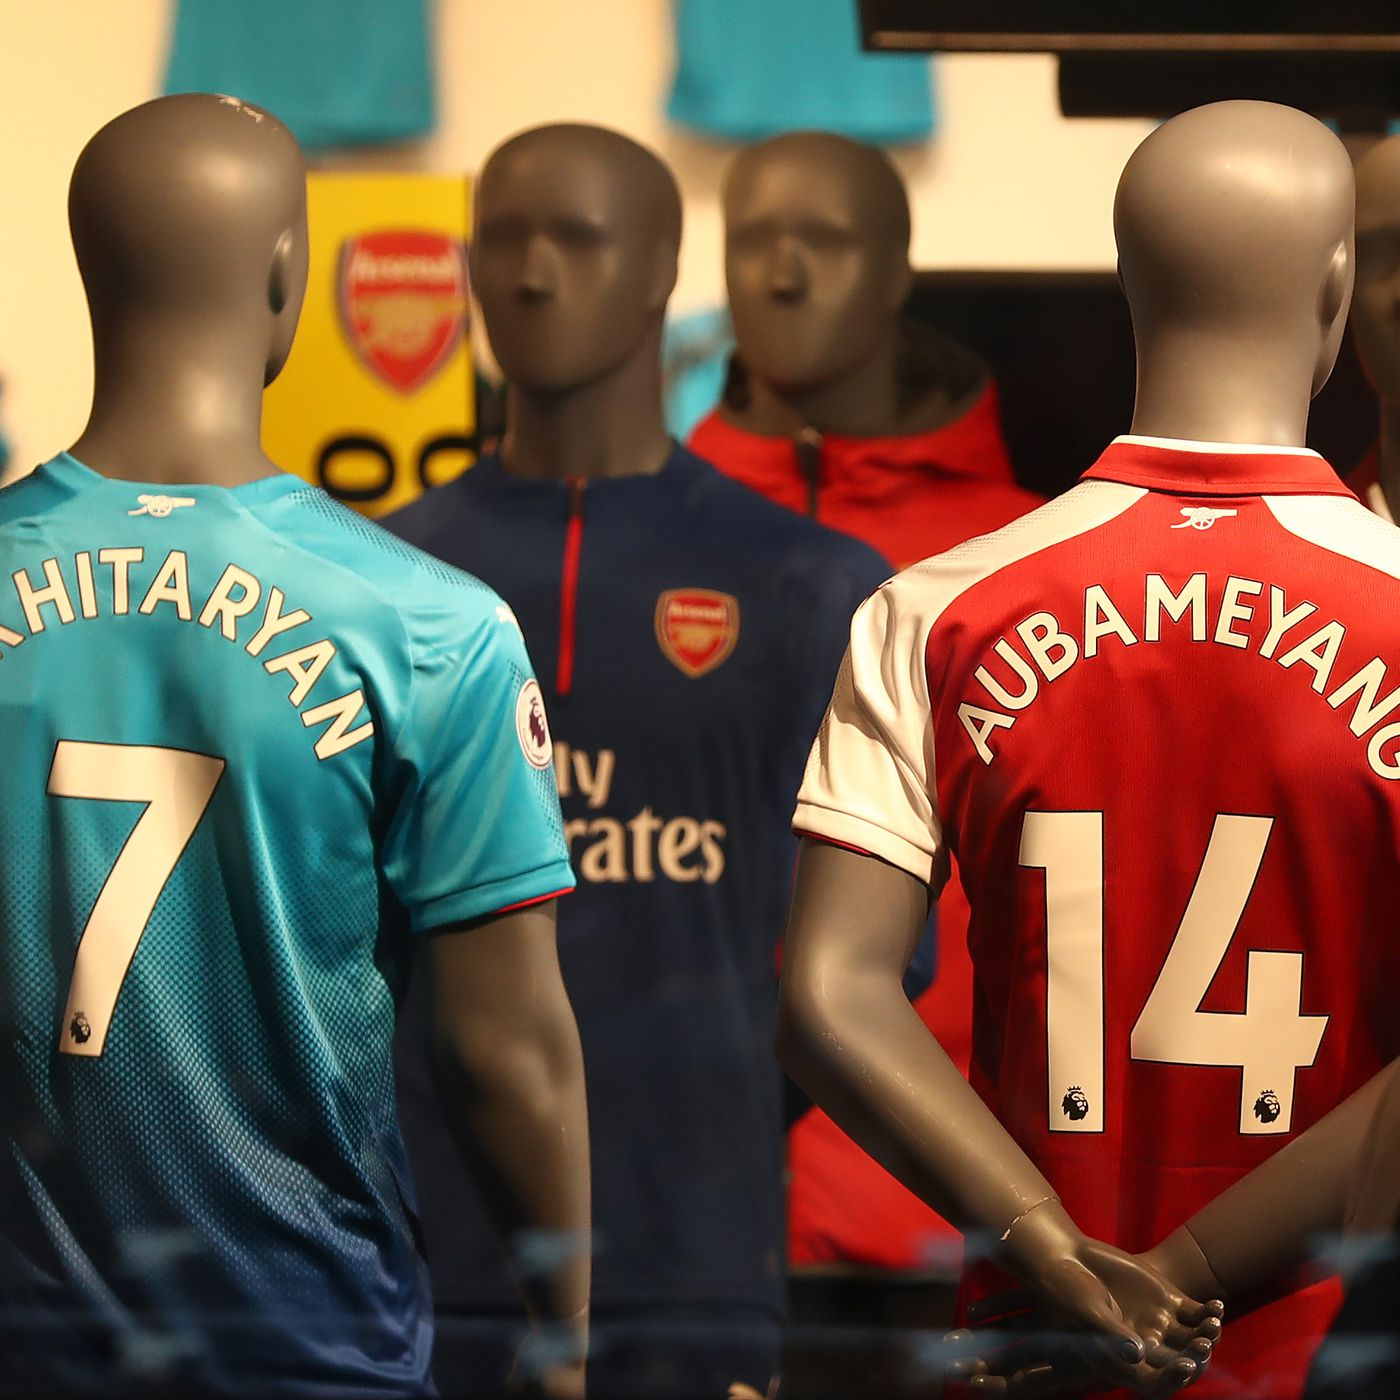 newest c5284 88ce6 Fans react positively to Arsenal's 2019-2020 Adidas third ...